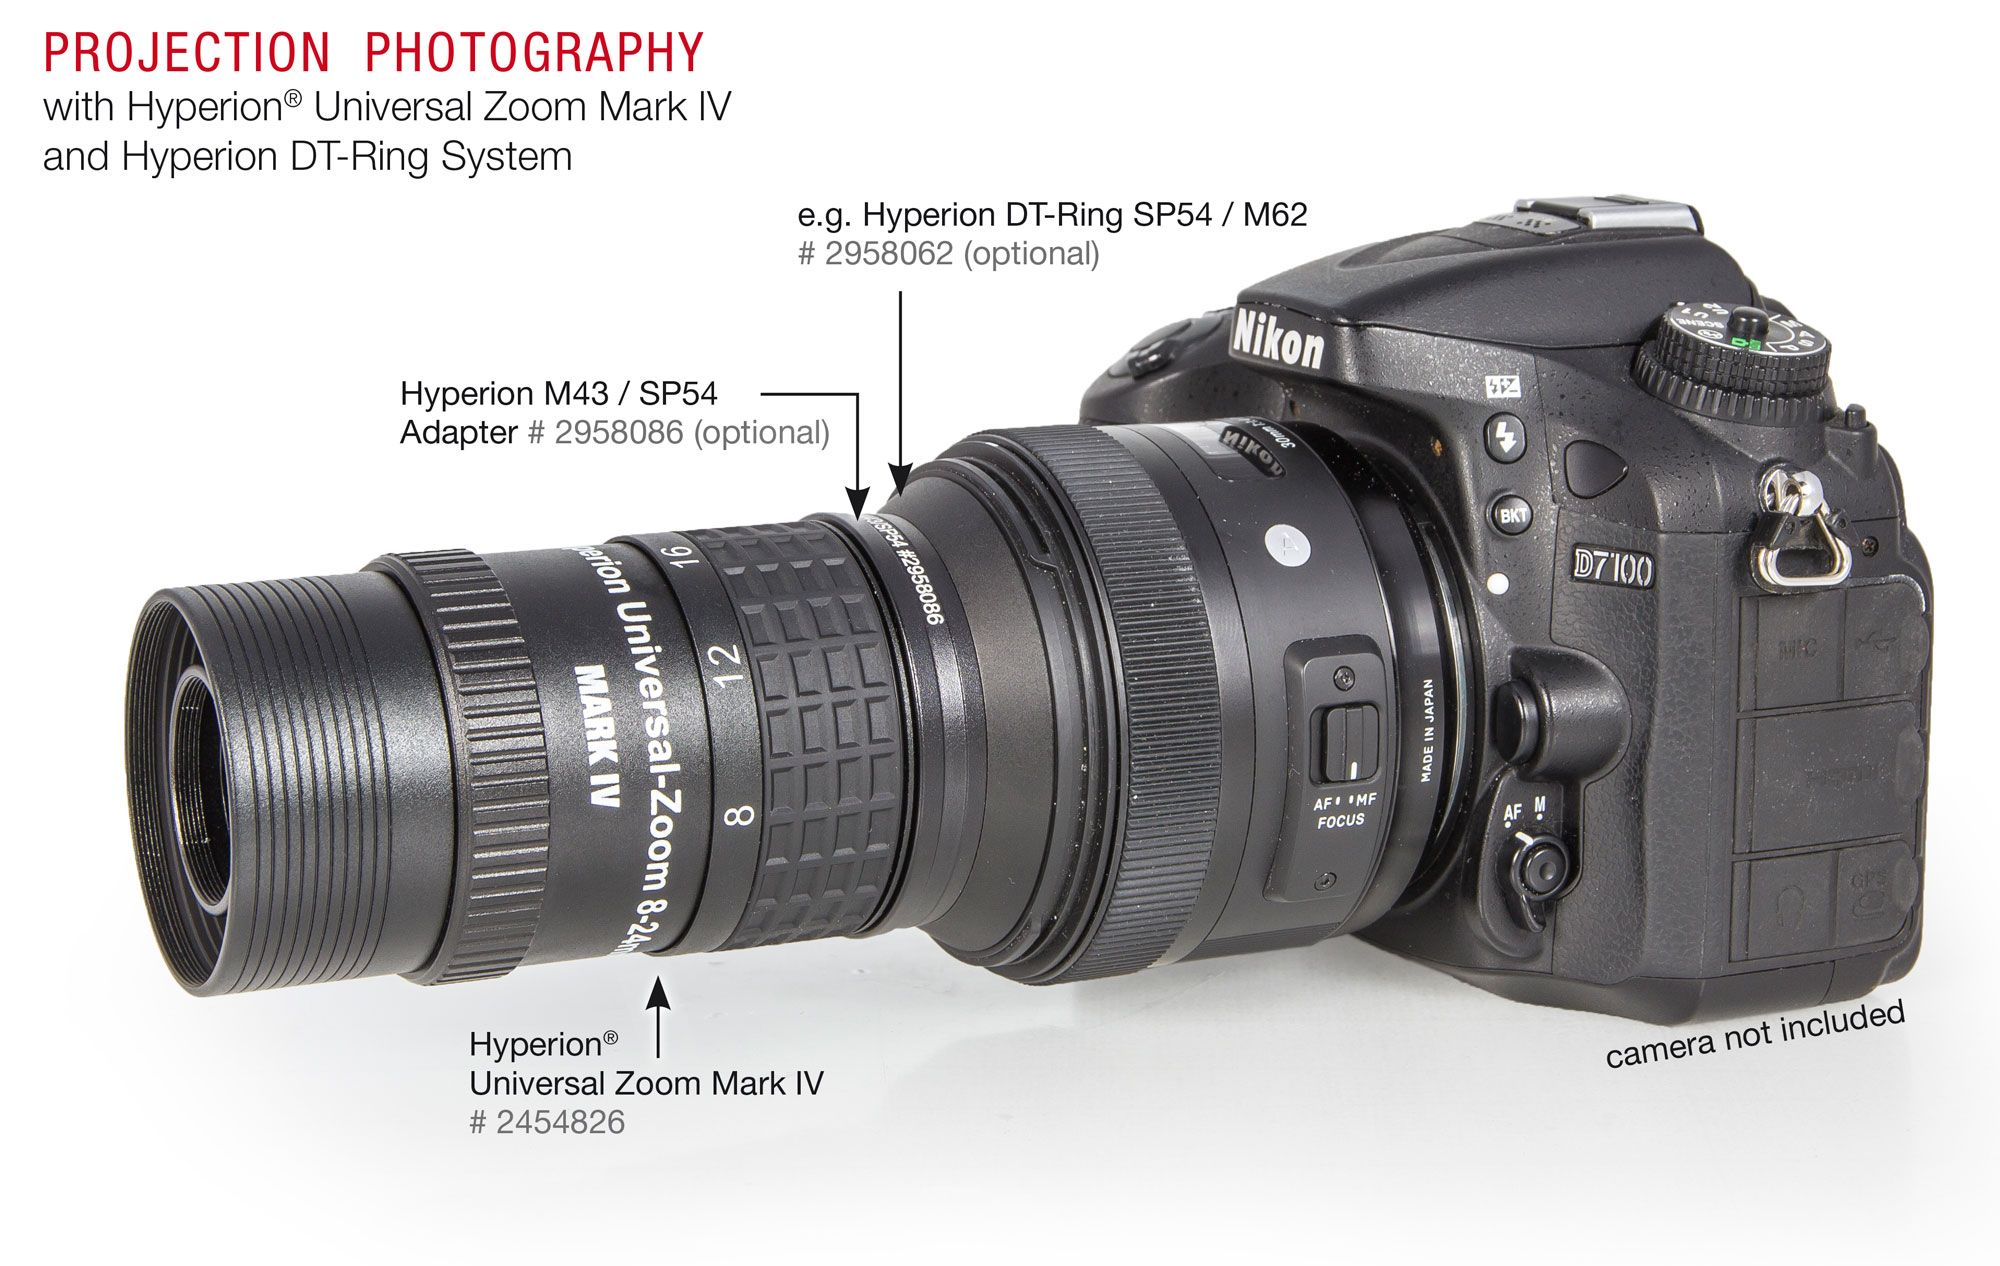 hyperion-universal-zoom-mark-4_camera-ad